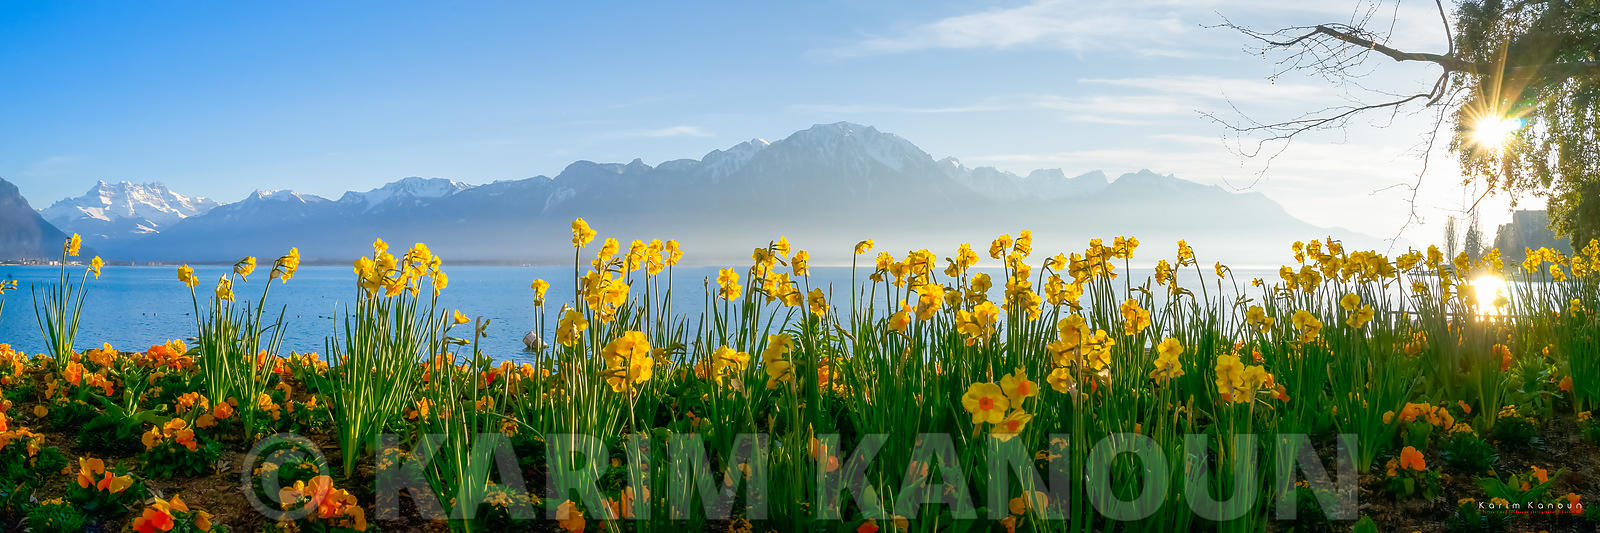 Panorama - The Alps from Montreux during the spring season